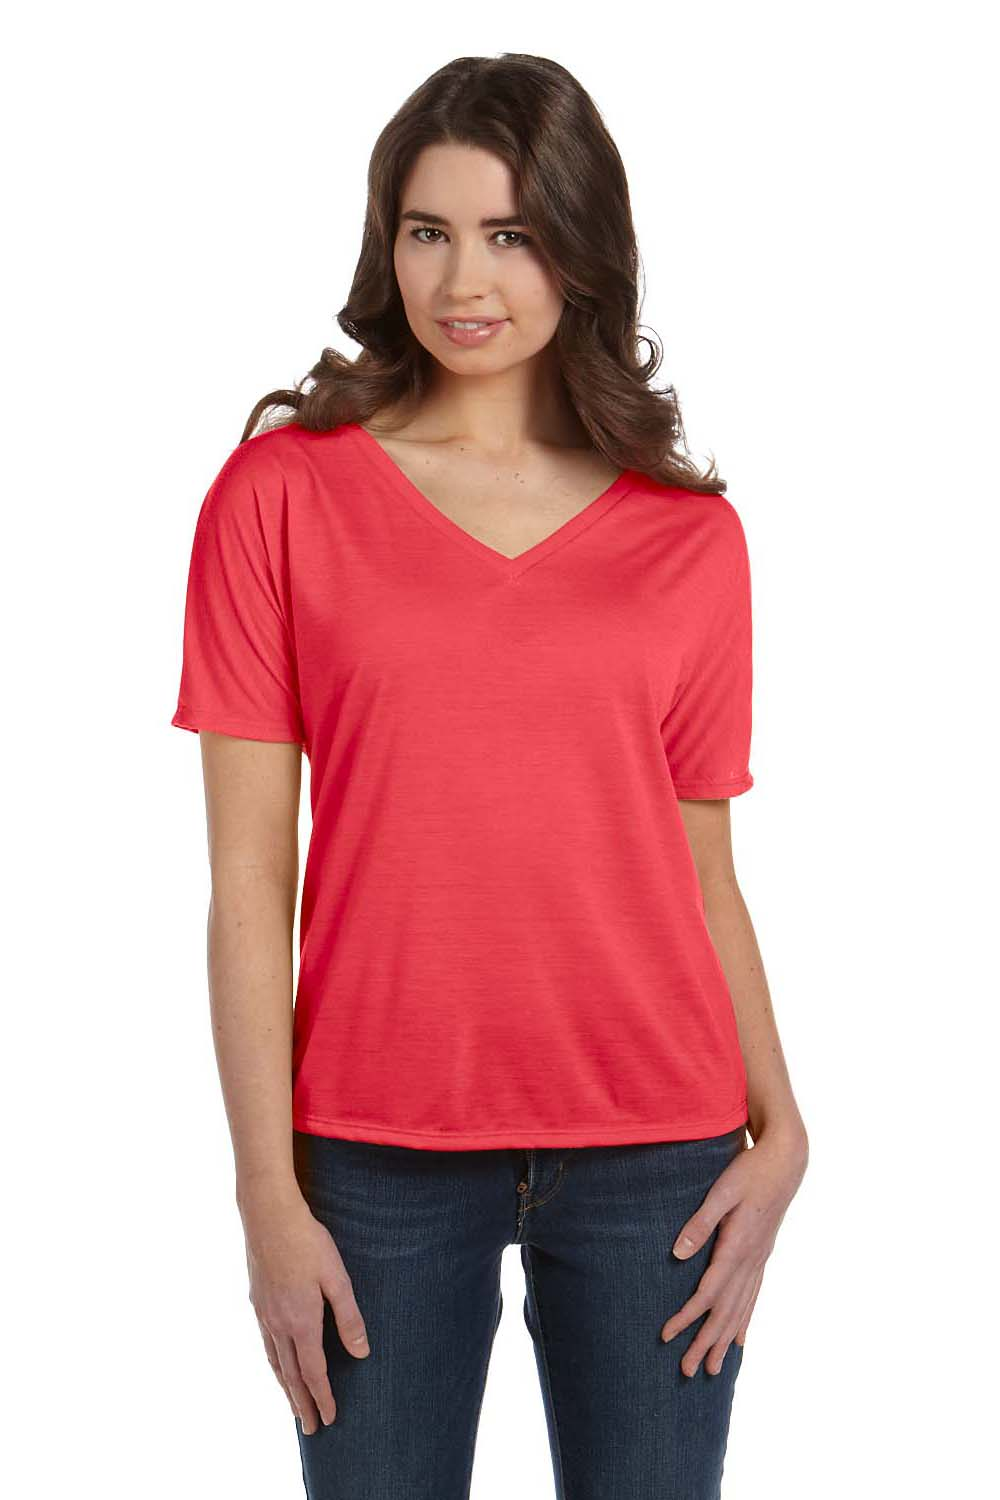 Bella + Canvas 8815 Womens Slouchy Short Sleeve V-Neck T-Shirt Coral Orange Front